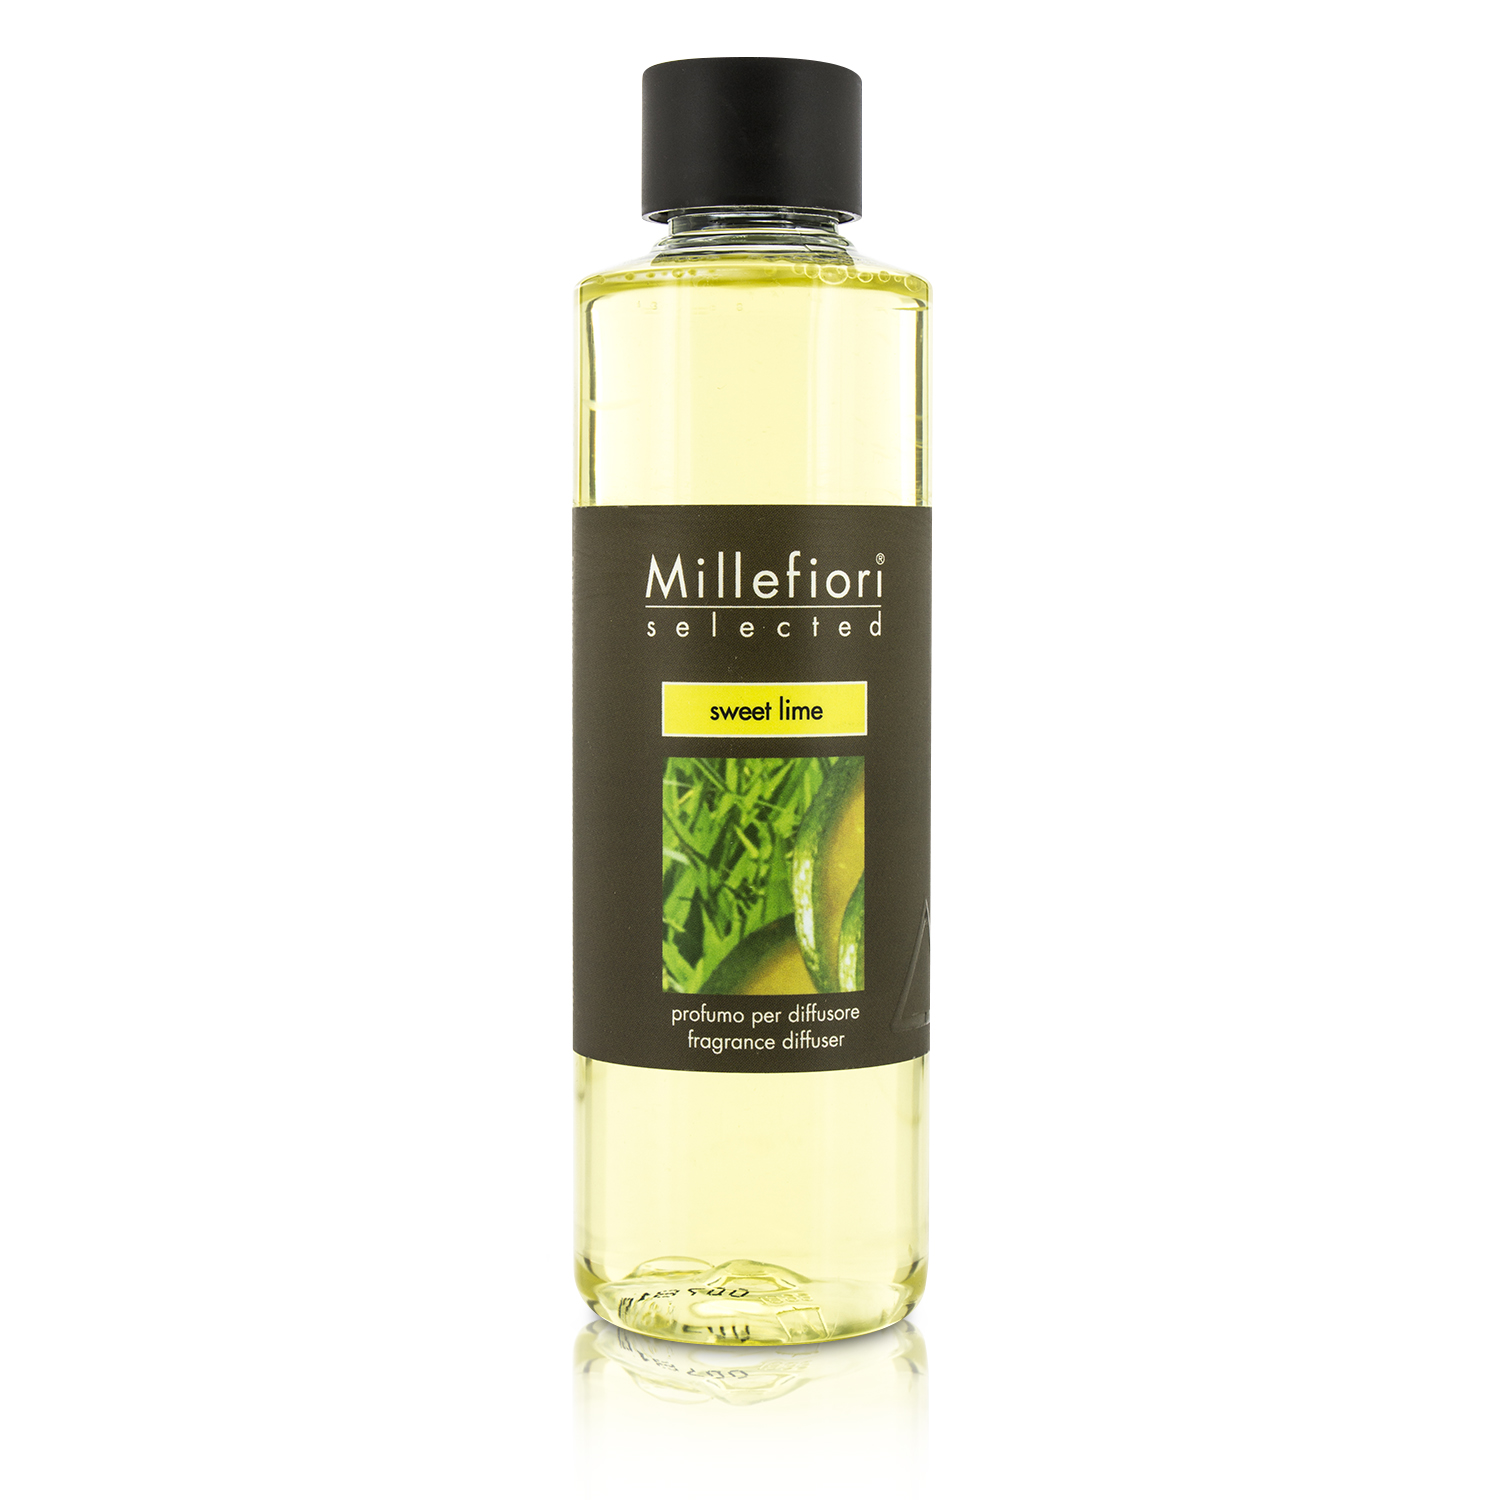 Selected Fragrance Diffuser Refill - Sweet Lime